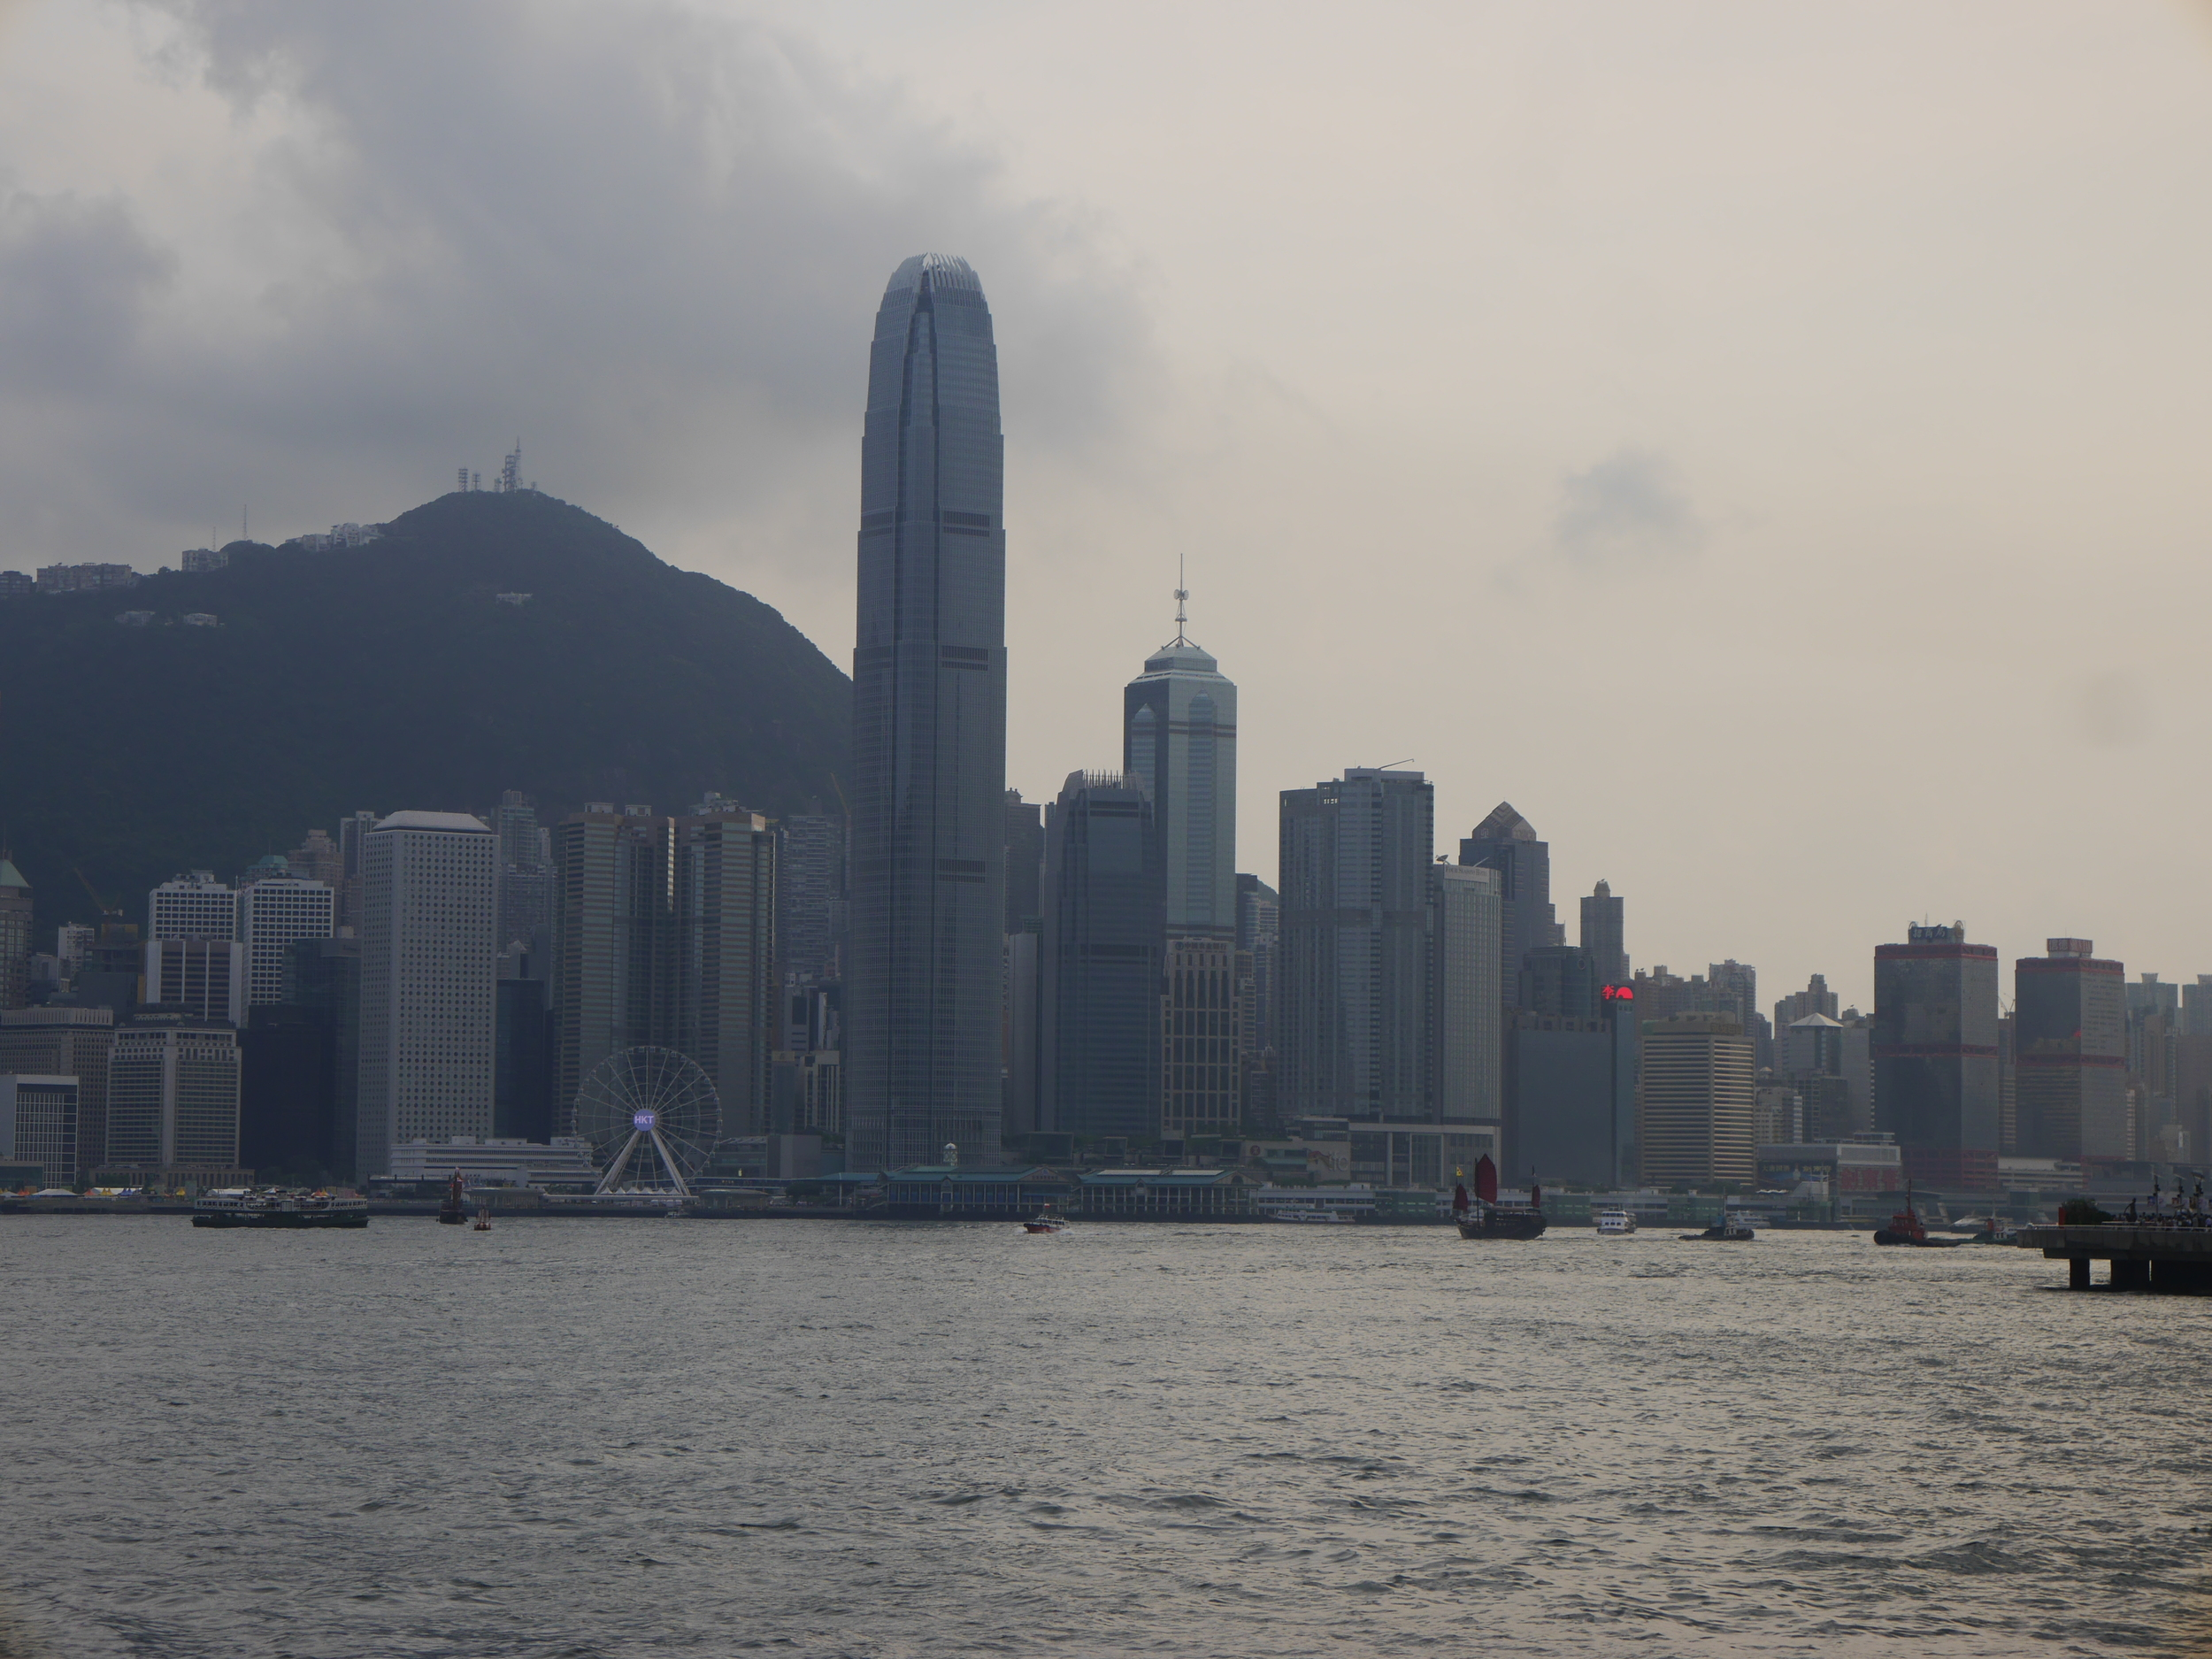 Another shot of the waterfront, featuring the second tallest building in Hong Kong,  Two International Finance Centre .